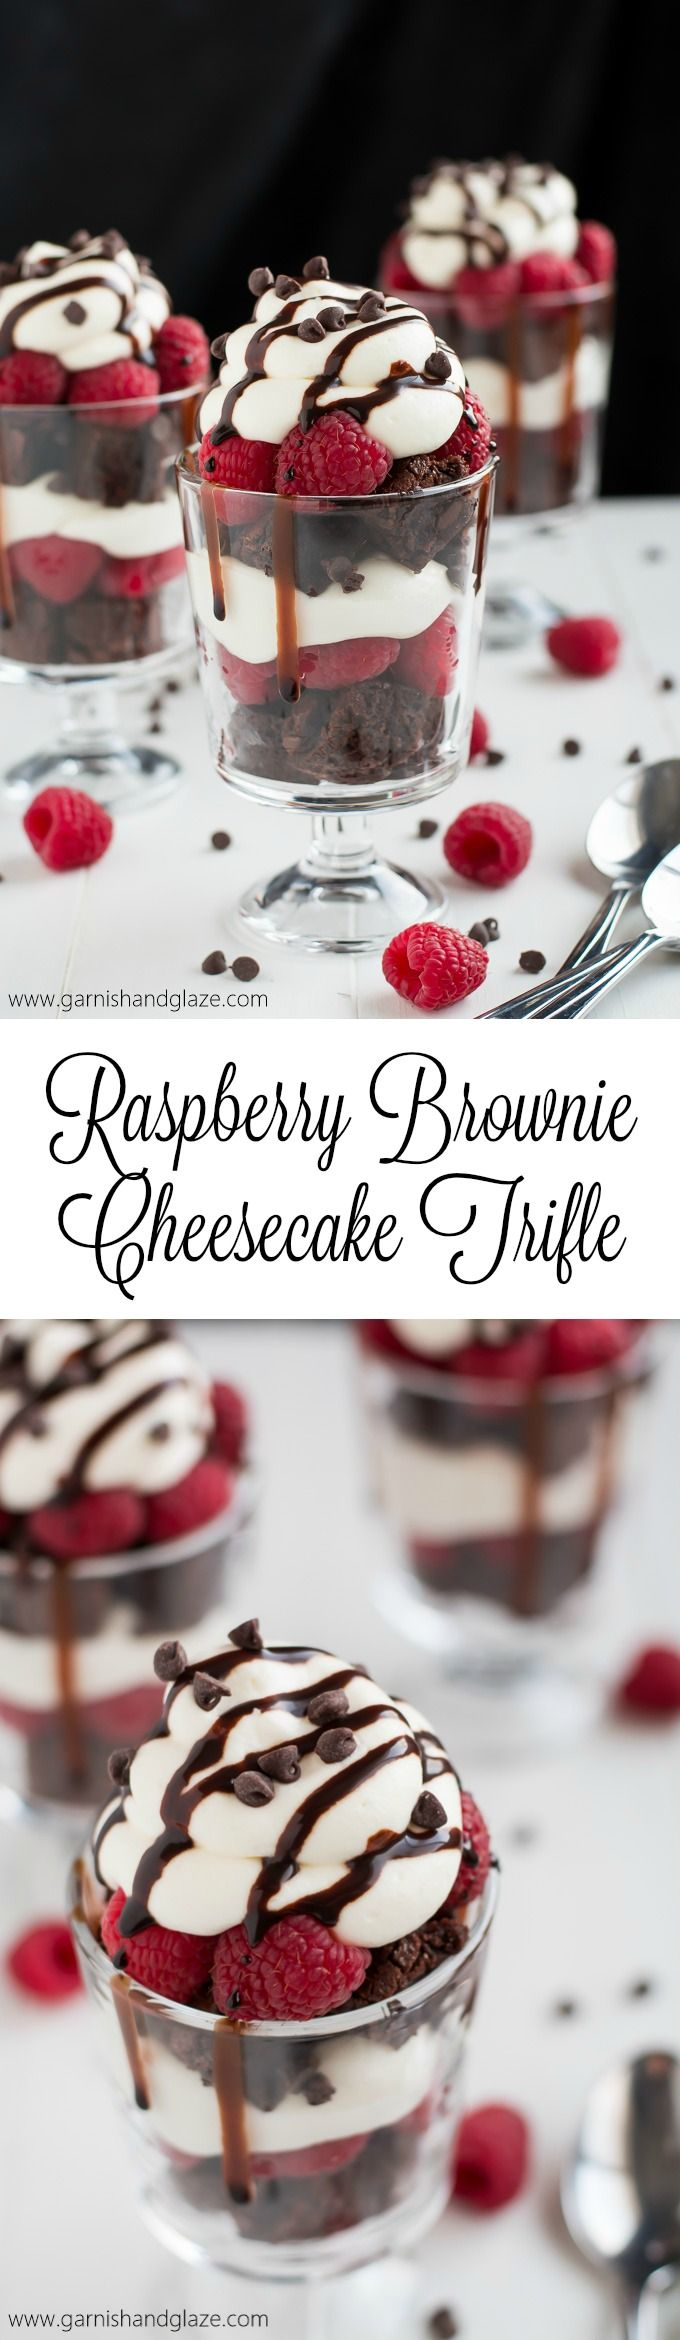 Nothing says love like these Raspberry Brownie Cheesecake Trifles made with rich chocolate from-scratch chocolate chip brownies, easy no-bake cheesecake filling, and fresh sweet raspberries.(Baking Treats Strawberry Cheesecake)